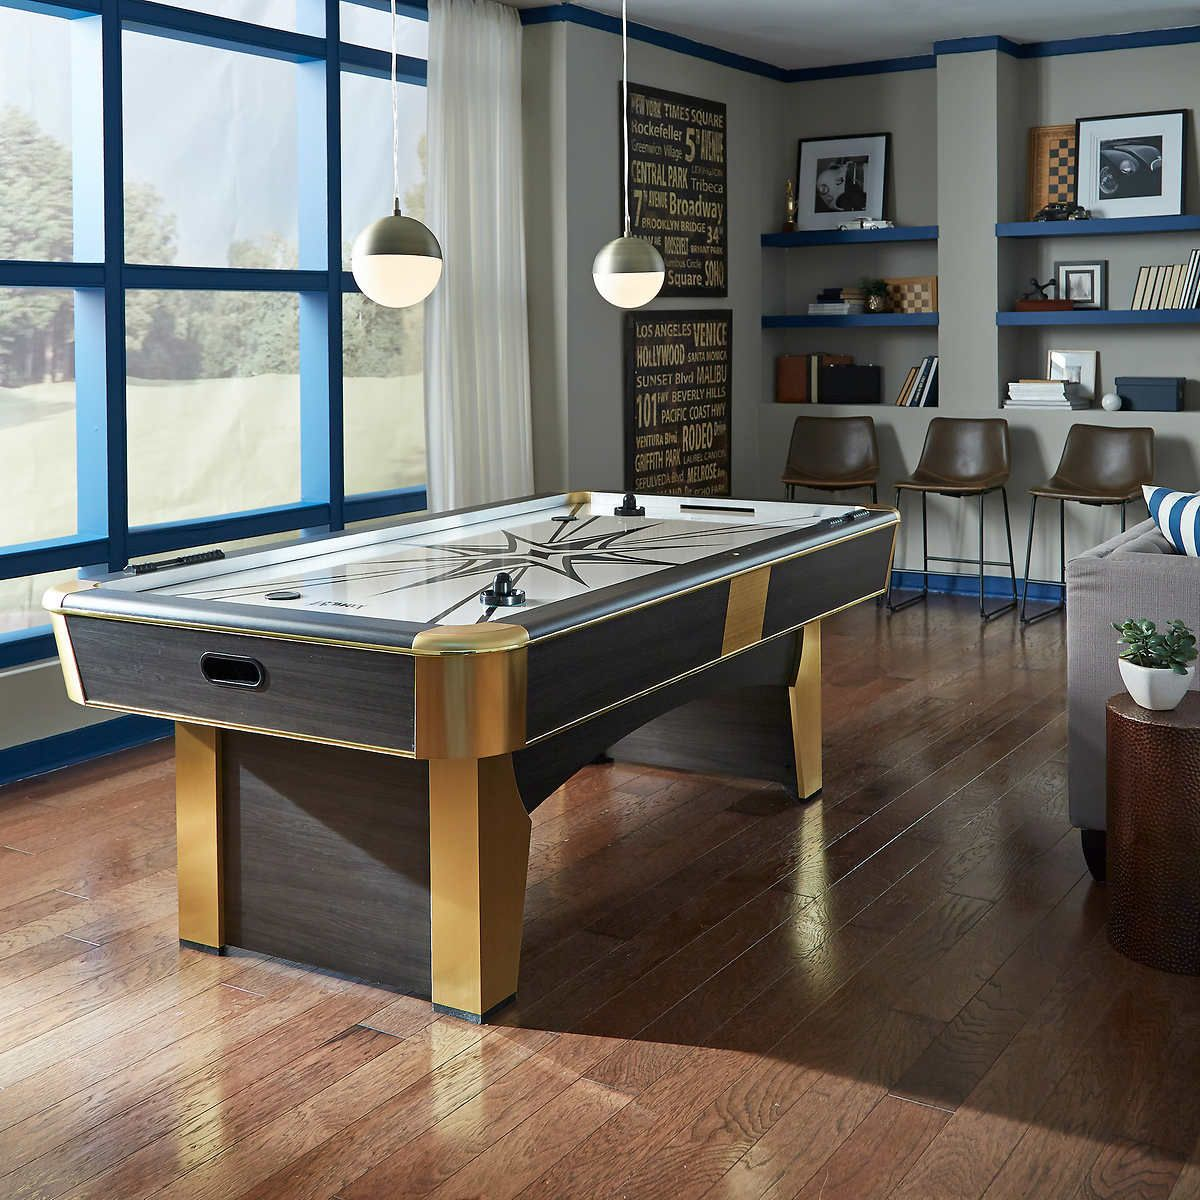 American Heritage Sydney Air Hockey Table In 2019 New